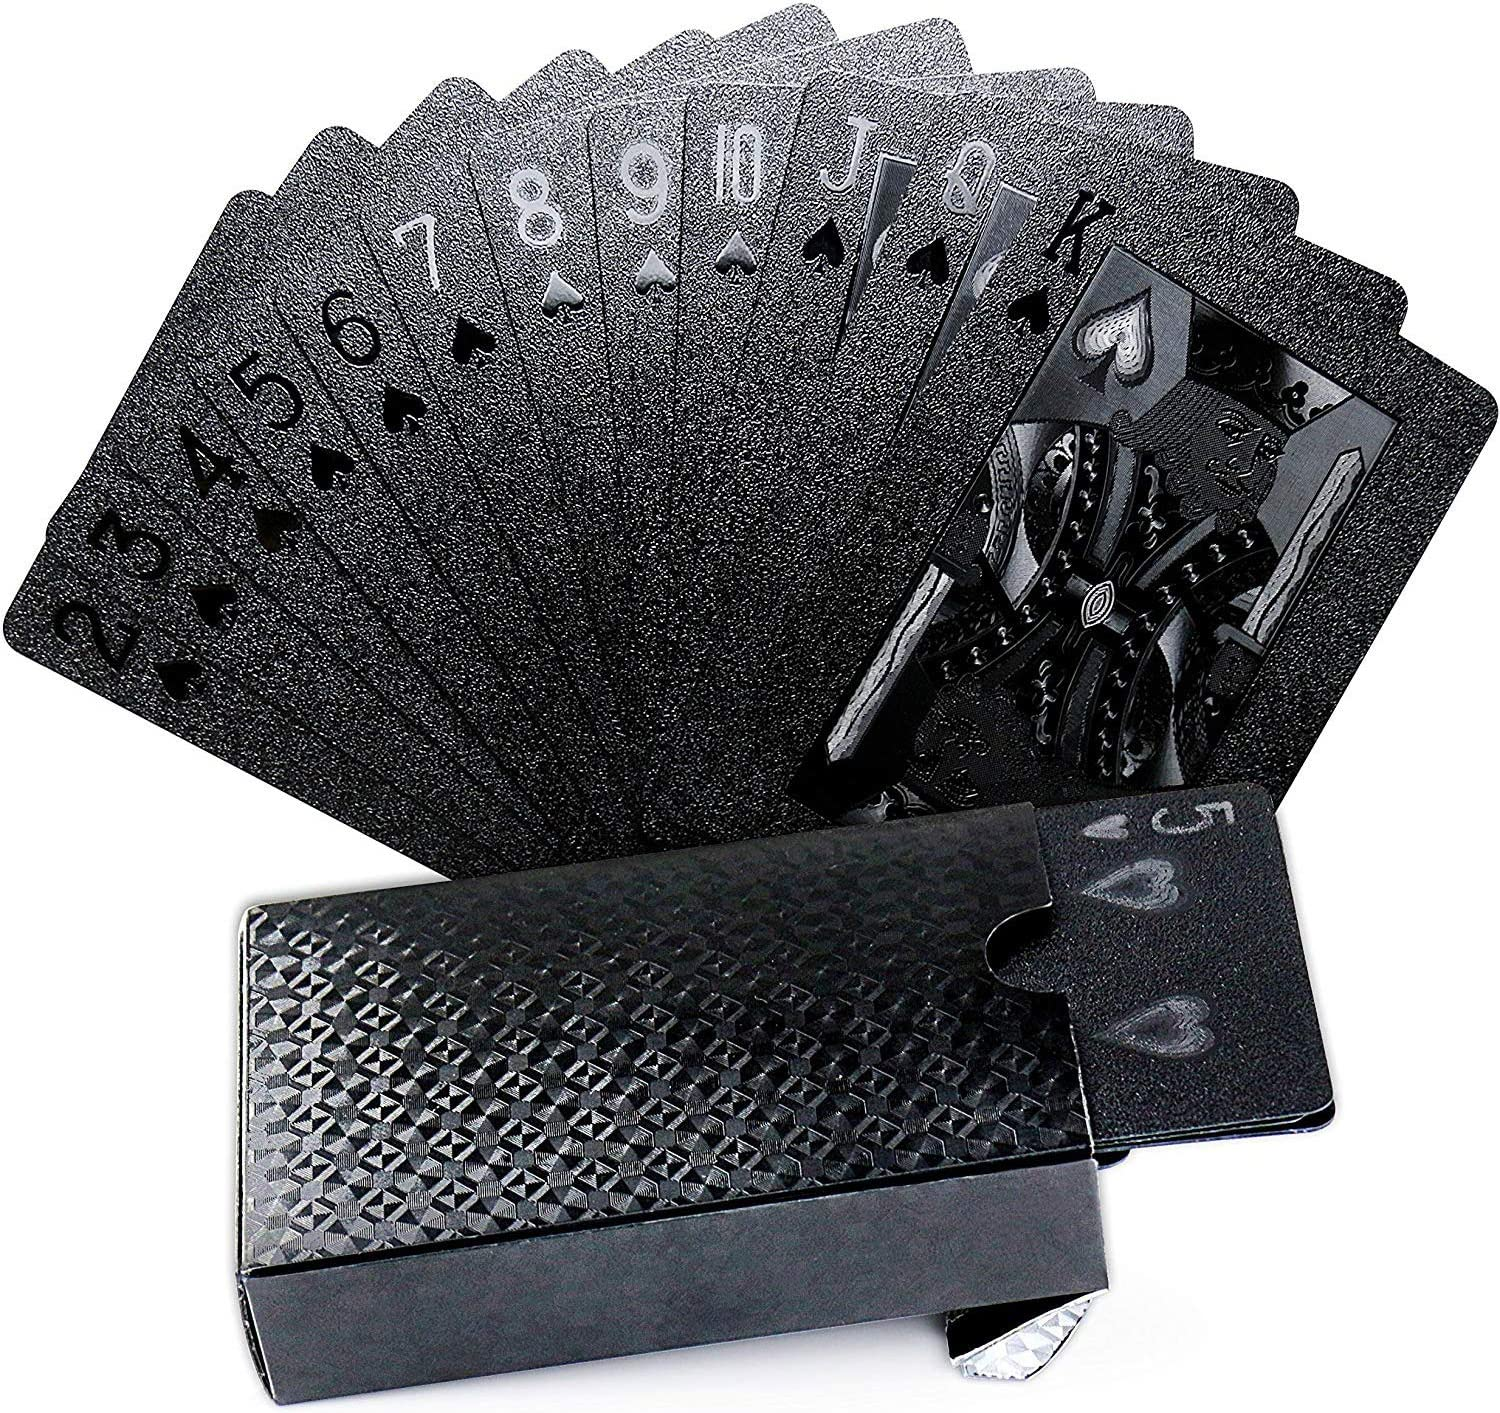 Joyoldelf Cool Black Foil Poker Playing Cards, Waterproof Deck of Cards with Gift Box, Use for Party and Game